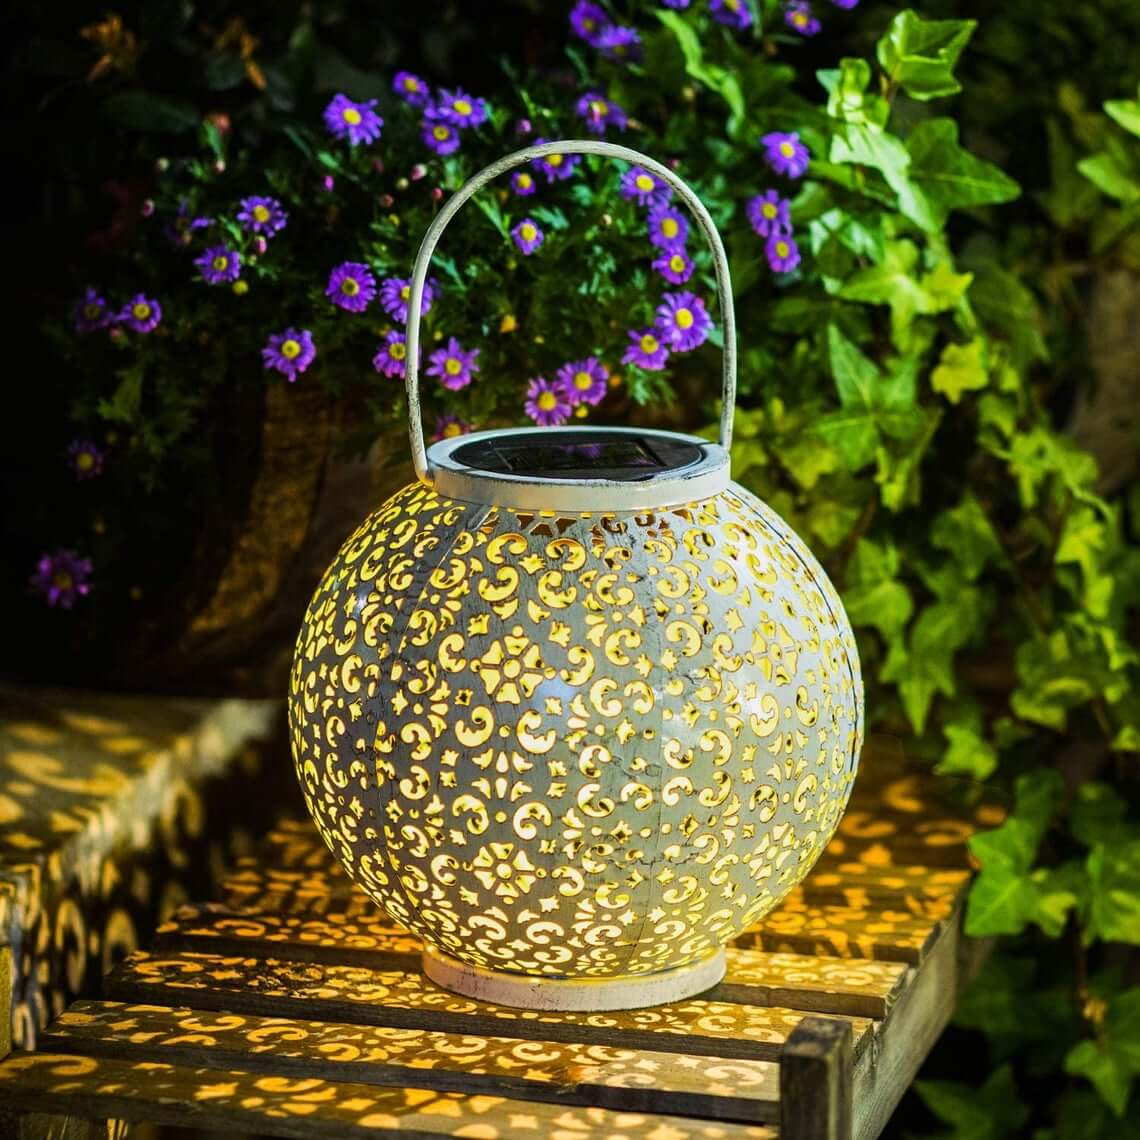 Intricate and Ornate Outdoor Chinese Lantern